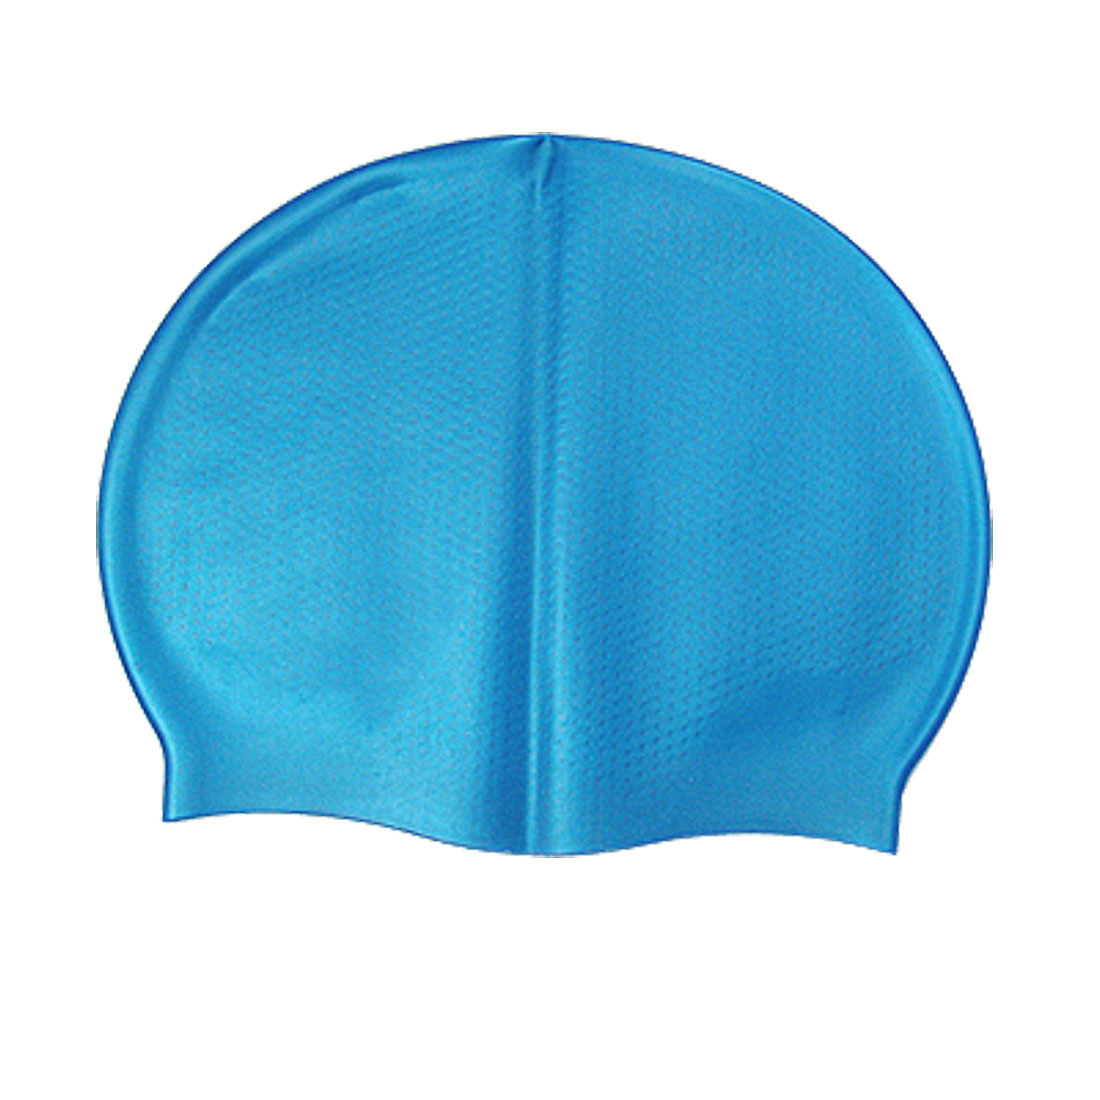 Flexible Blue Sporty Silicone Water Resist Swimming Cap